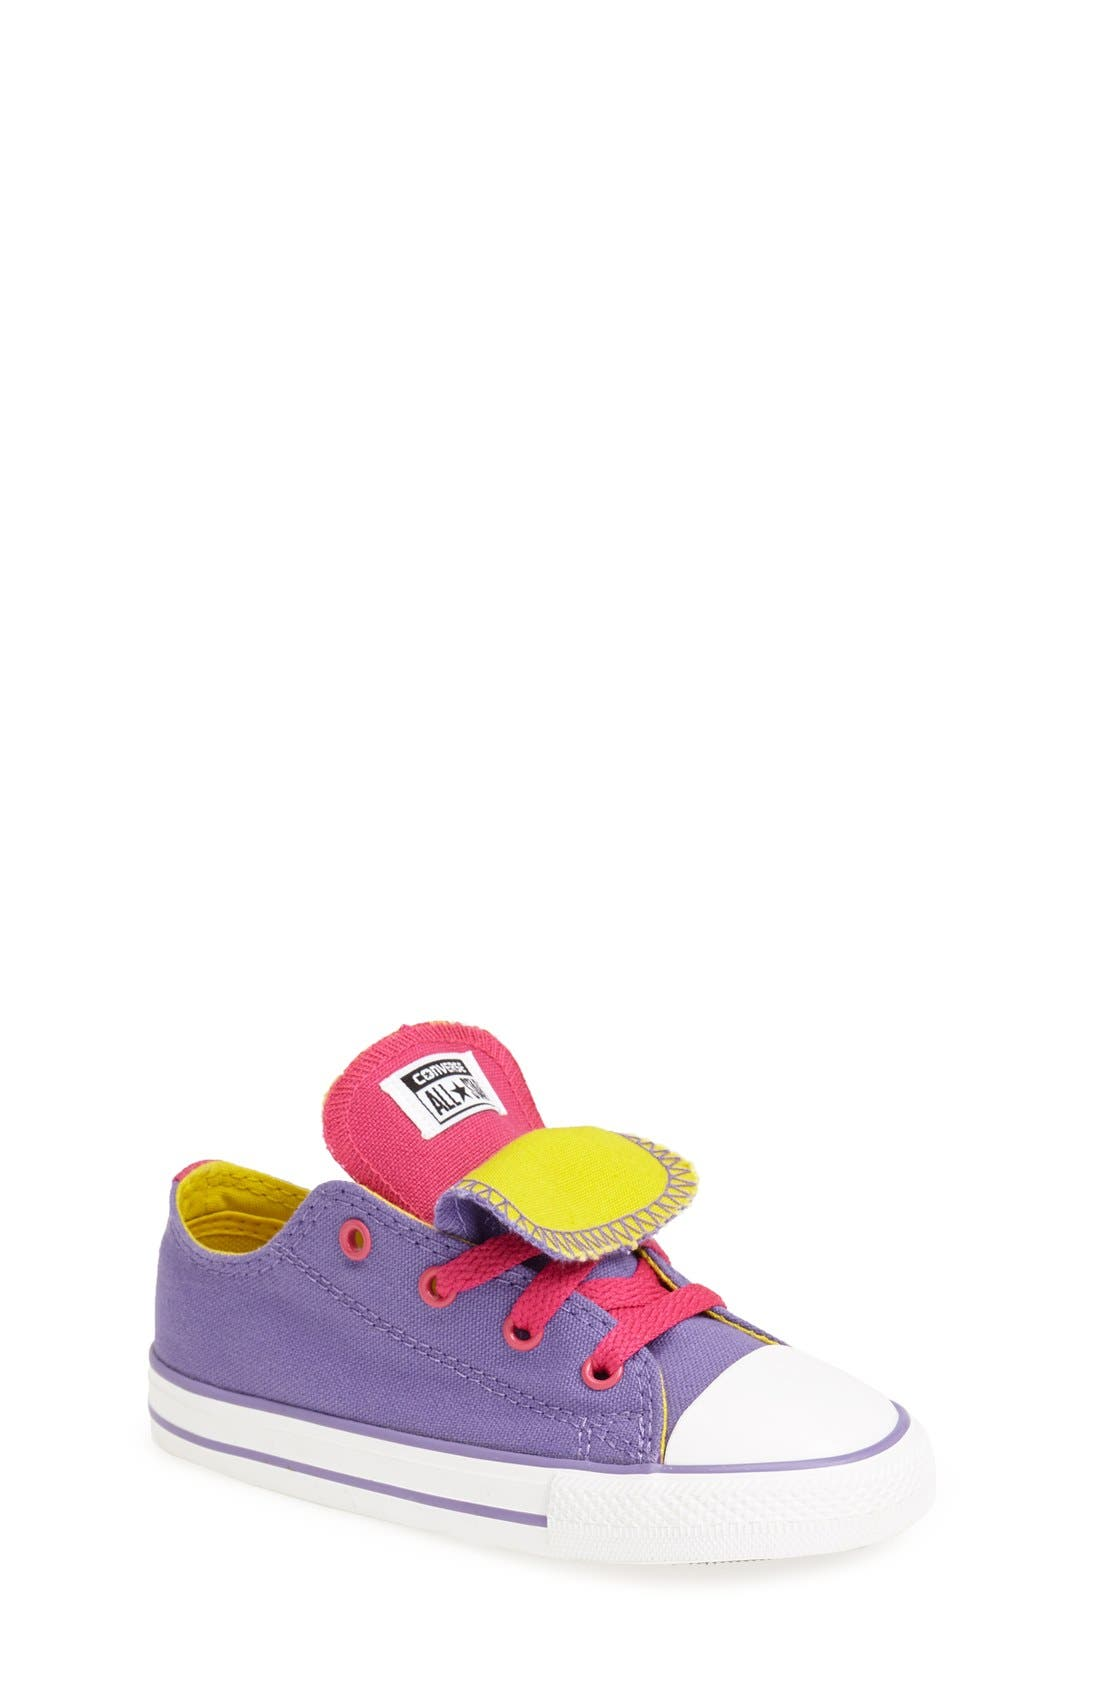 Alternate Image 1 Selected - Converse Chuck Taylor® All Star® Double Tongue Sneaker (Baby, Walker & Toddler)